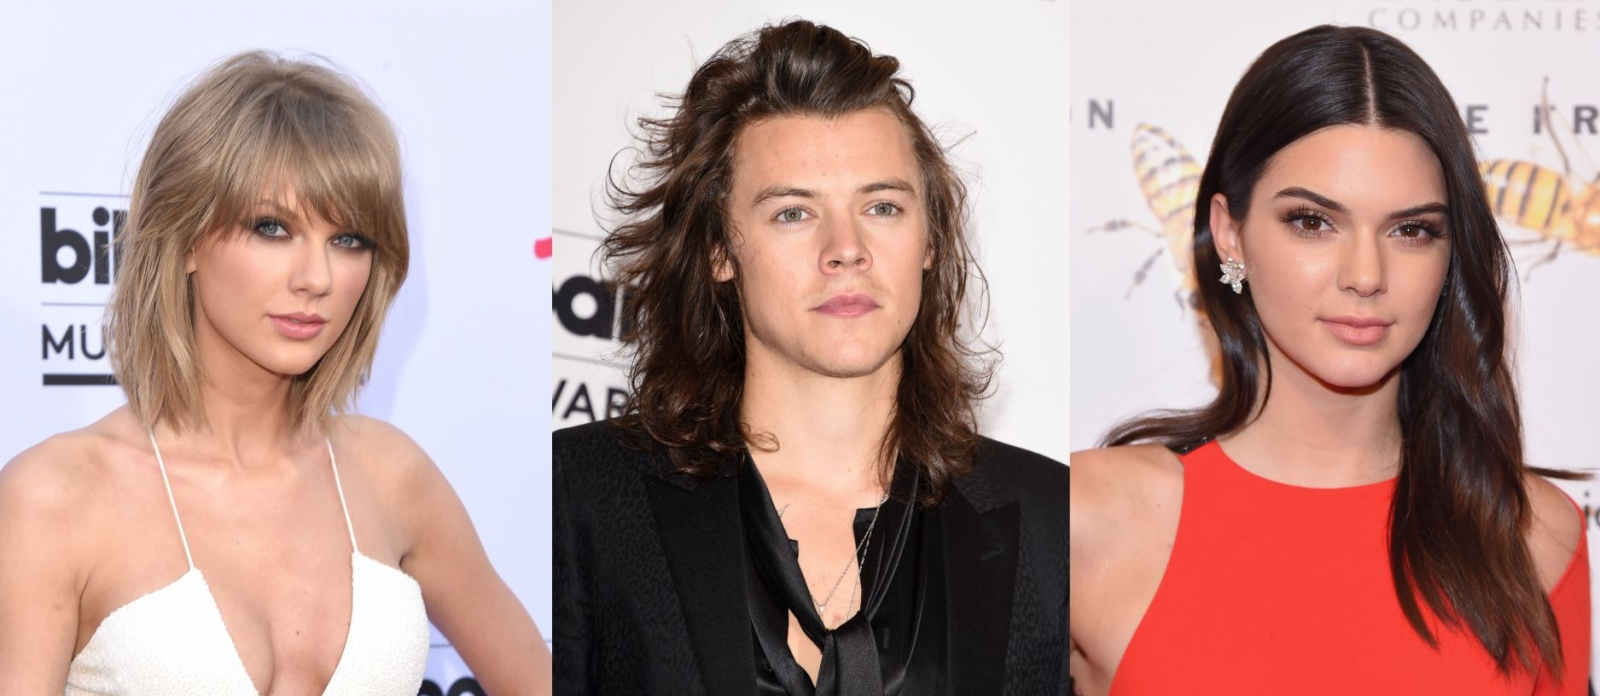 Taylor Swift Kendall Jenner Harry Styles